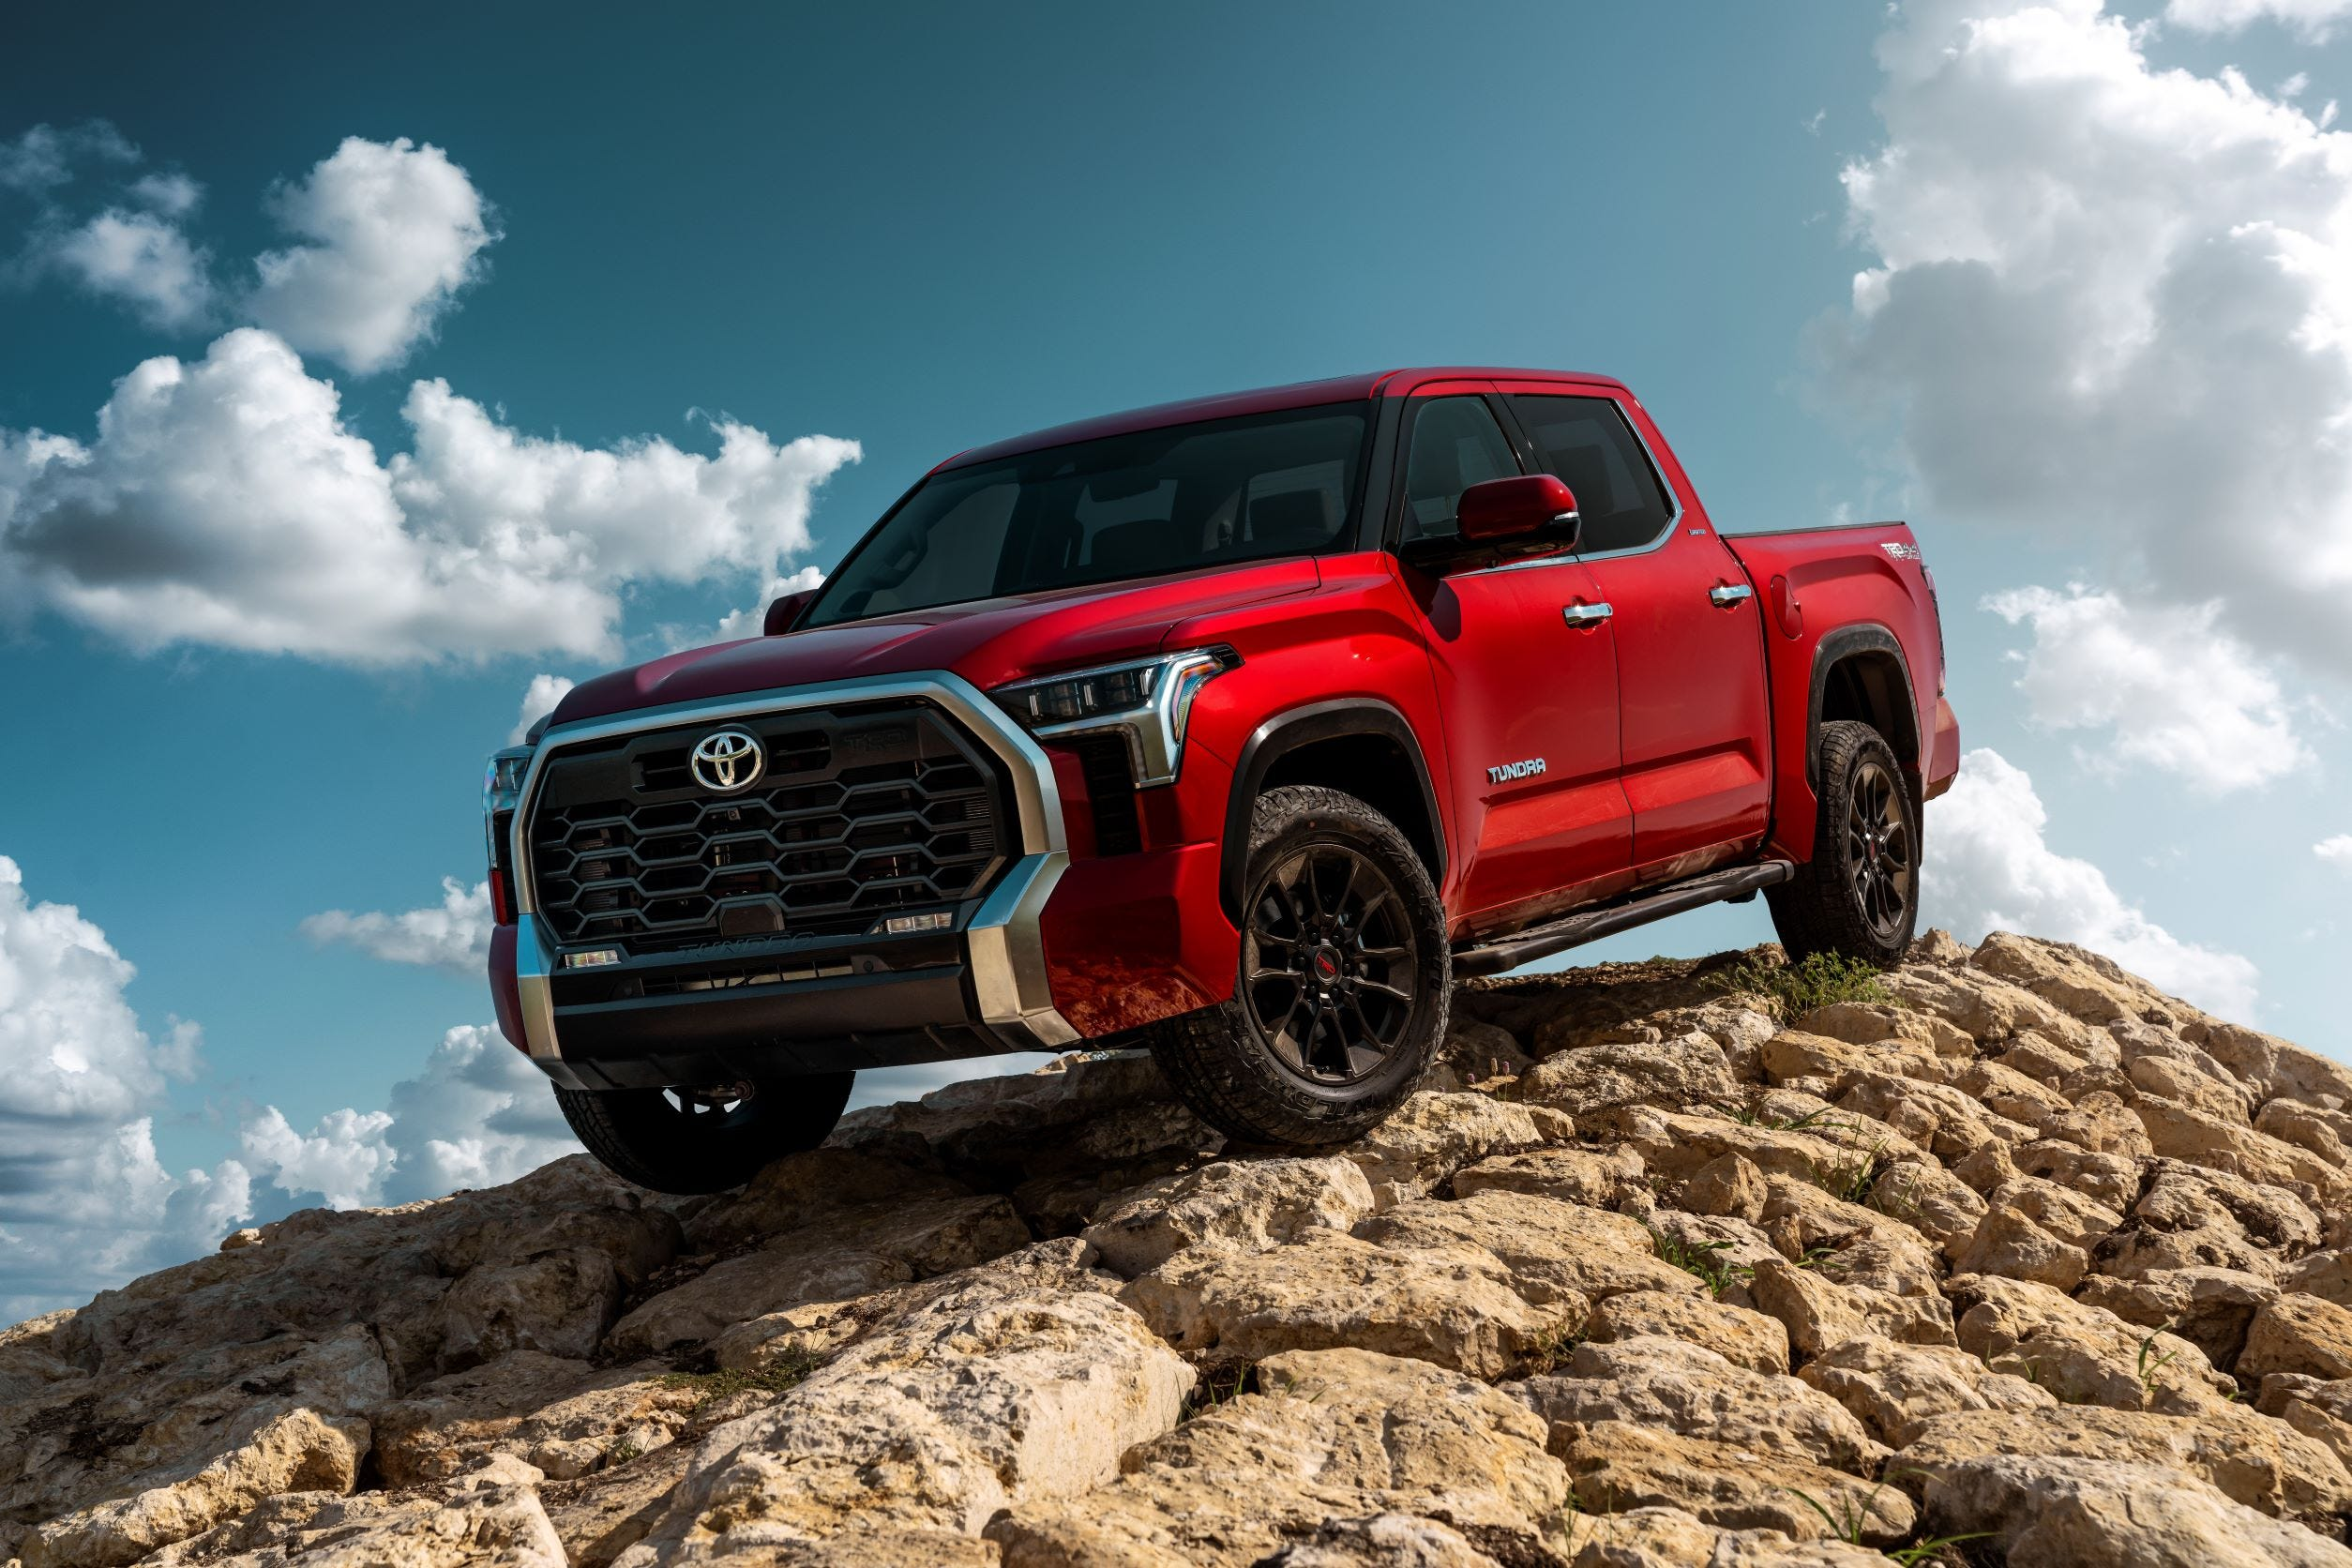 Toyota reveals redesigned 2022 Tundra full-size pickup, ditching 8-cylinder engine